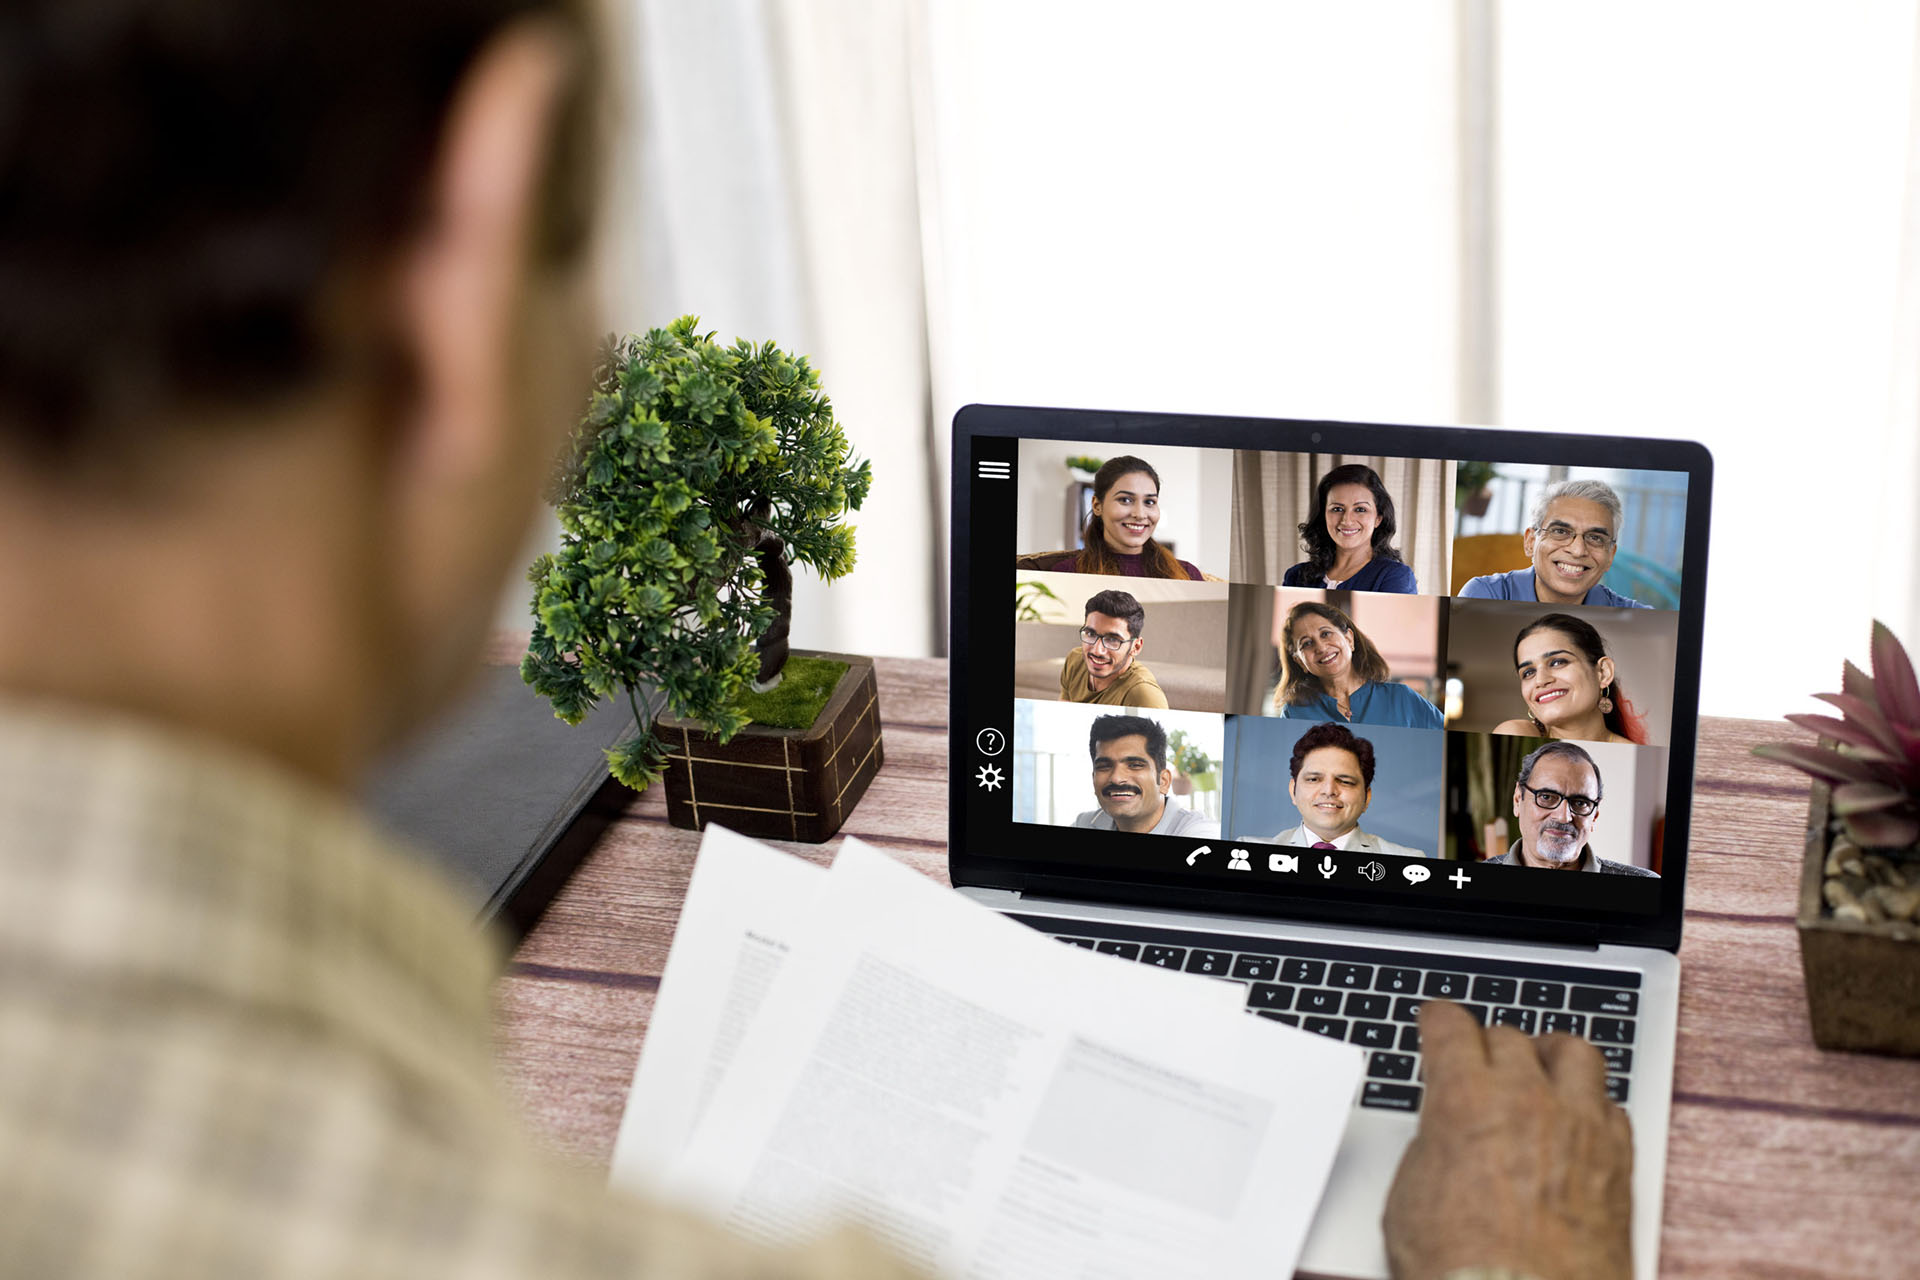 A man attends a remote video conference meeting on laptop at home